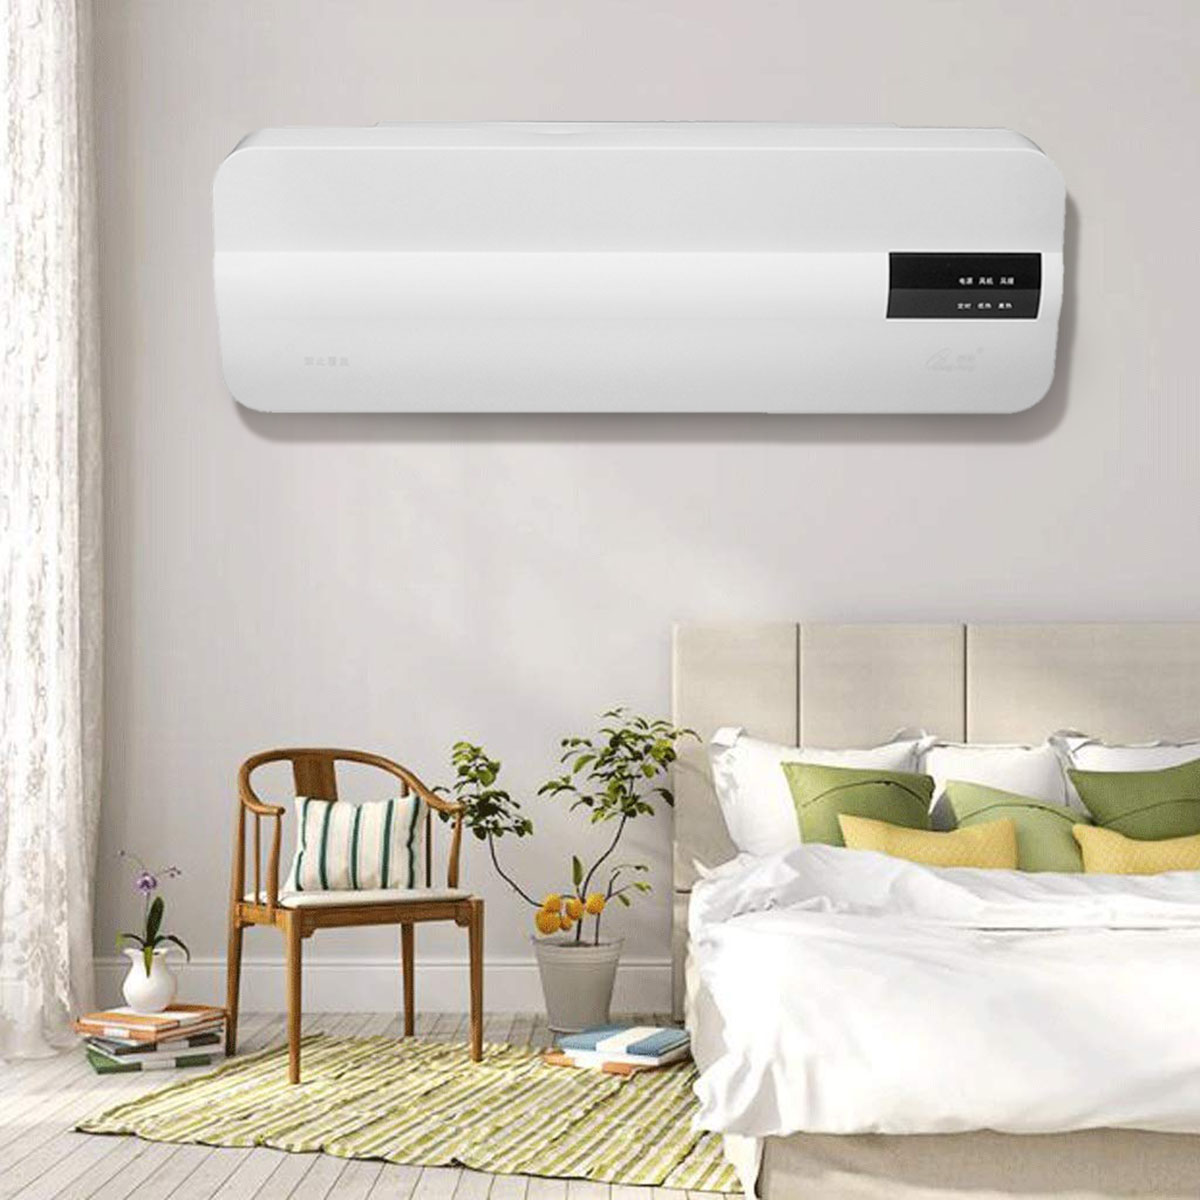 2 In 1 Wall Mounted Air Condition Fan Electric Heater Cool & Warm